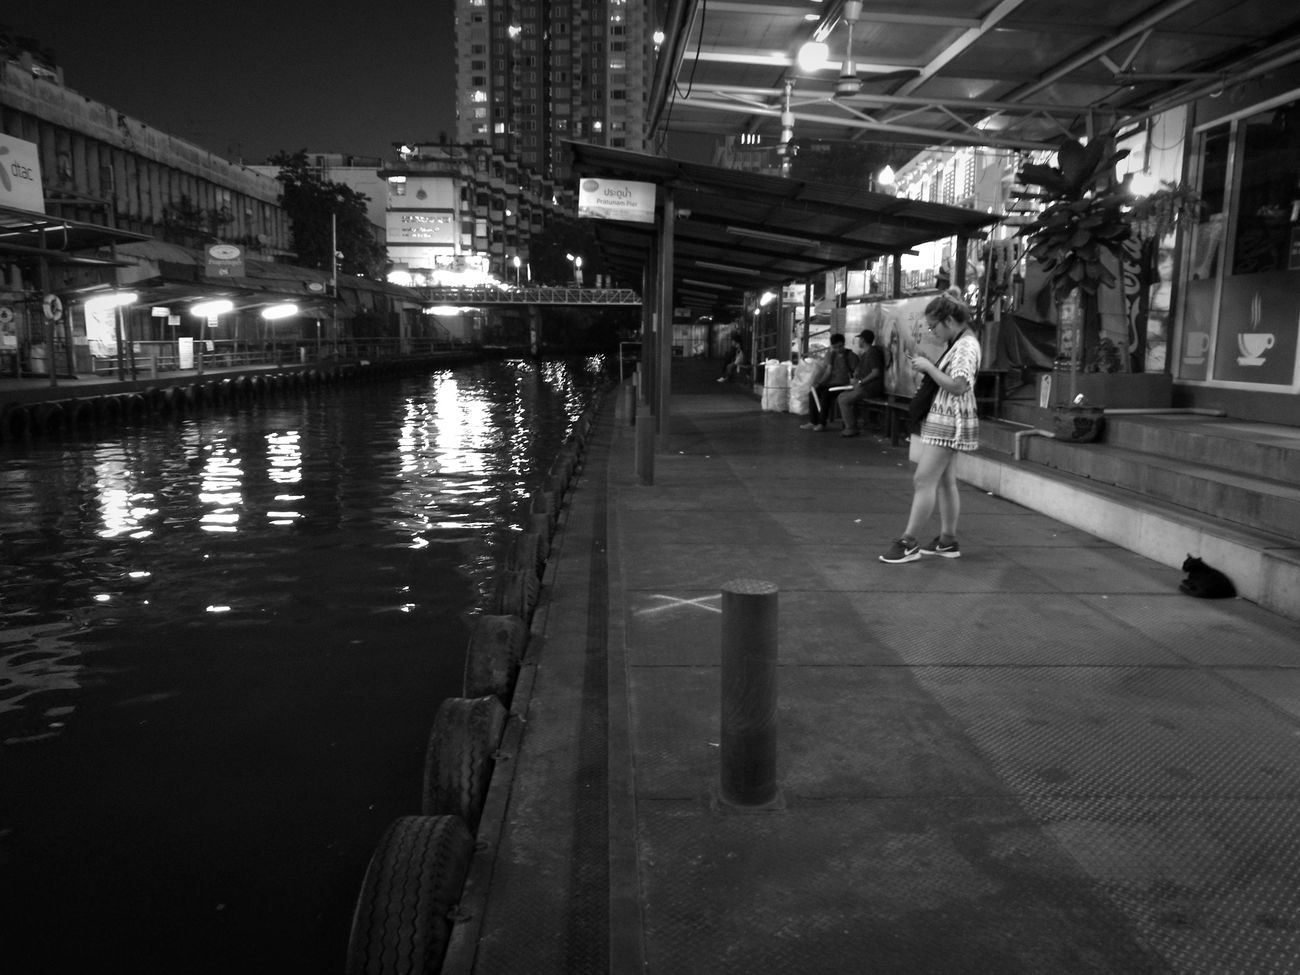 Riverboat Bangkok Life Ordinary Day Night Outdoors Real People Bangkok Streetphotography P9 Huawei Black And White